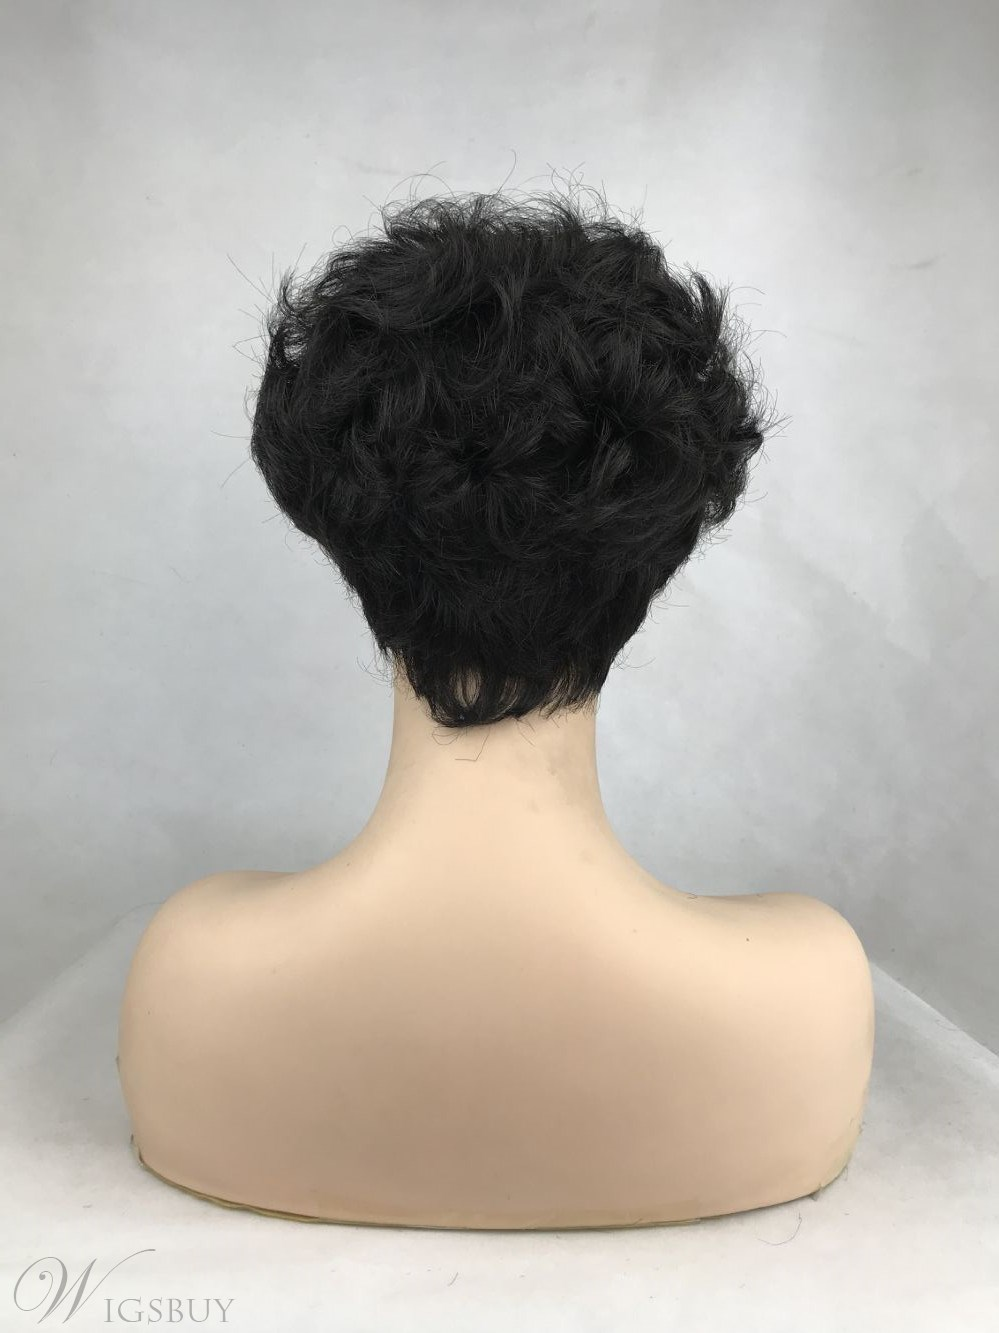 Sexy Women's Short Curly Synthetic Hair Wigs With Bangs Capless Wig 10inch